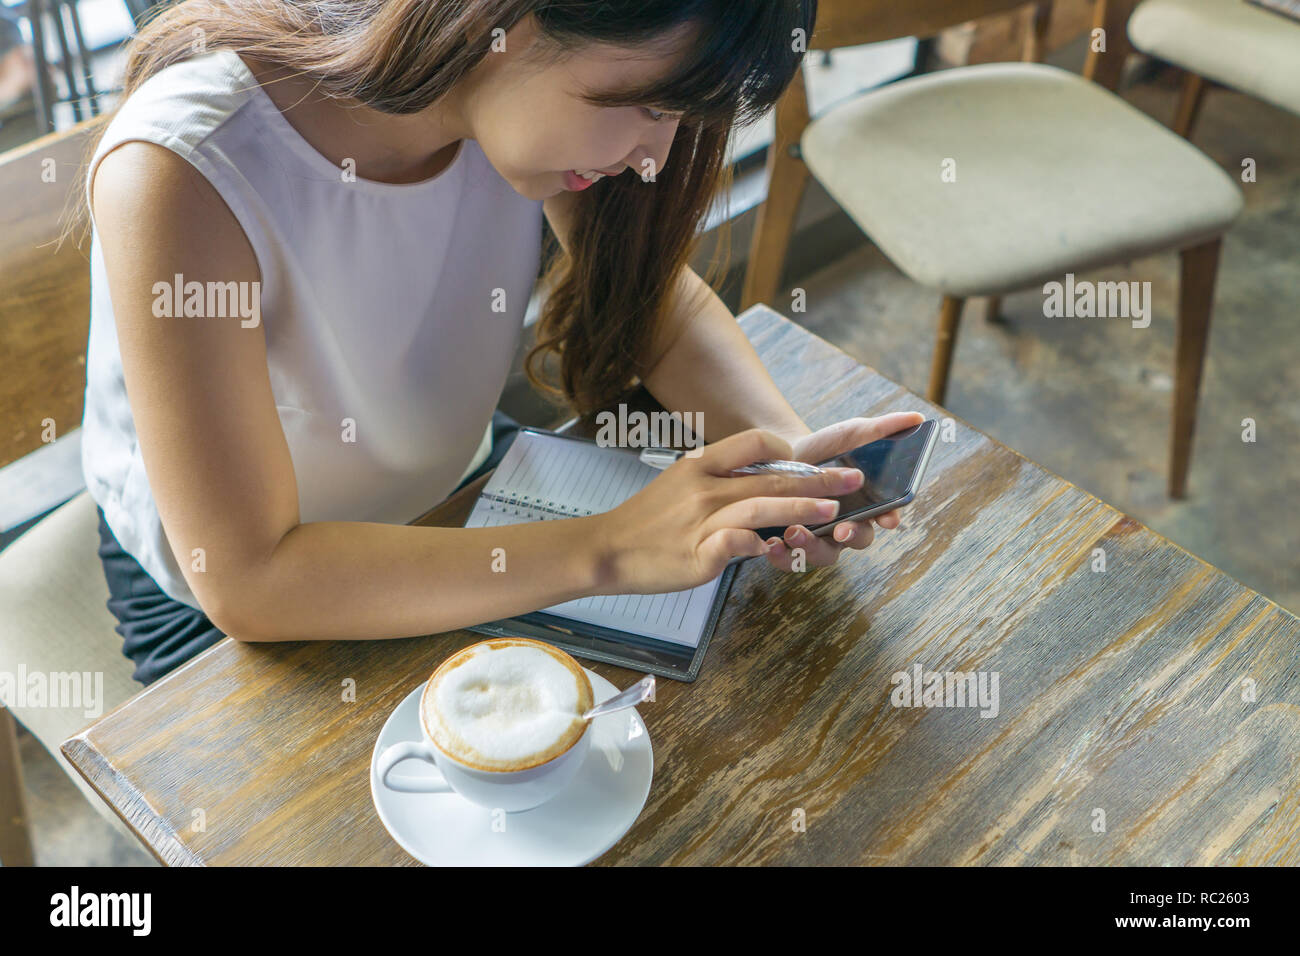 Smiling girl tapping smartphone screen - Stock Image